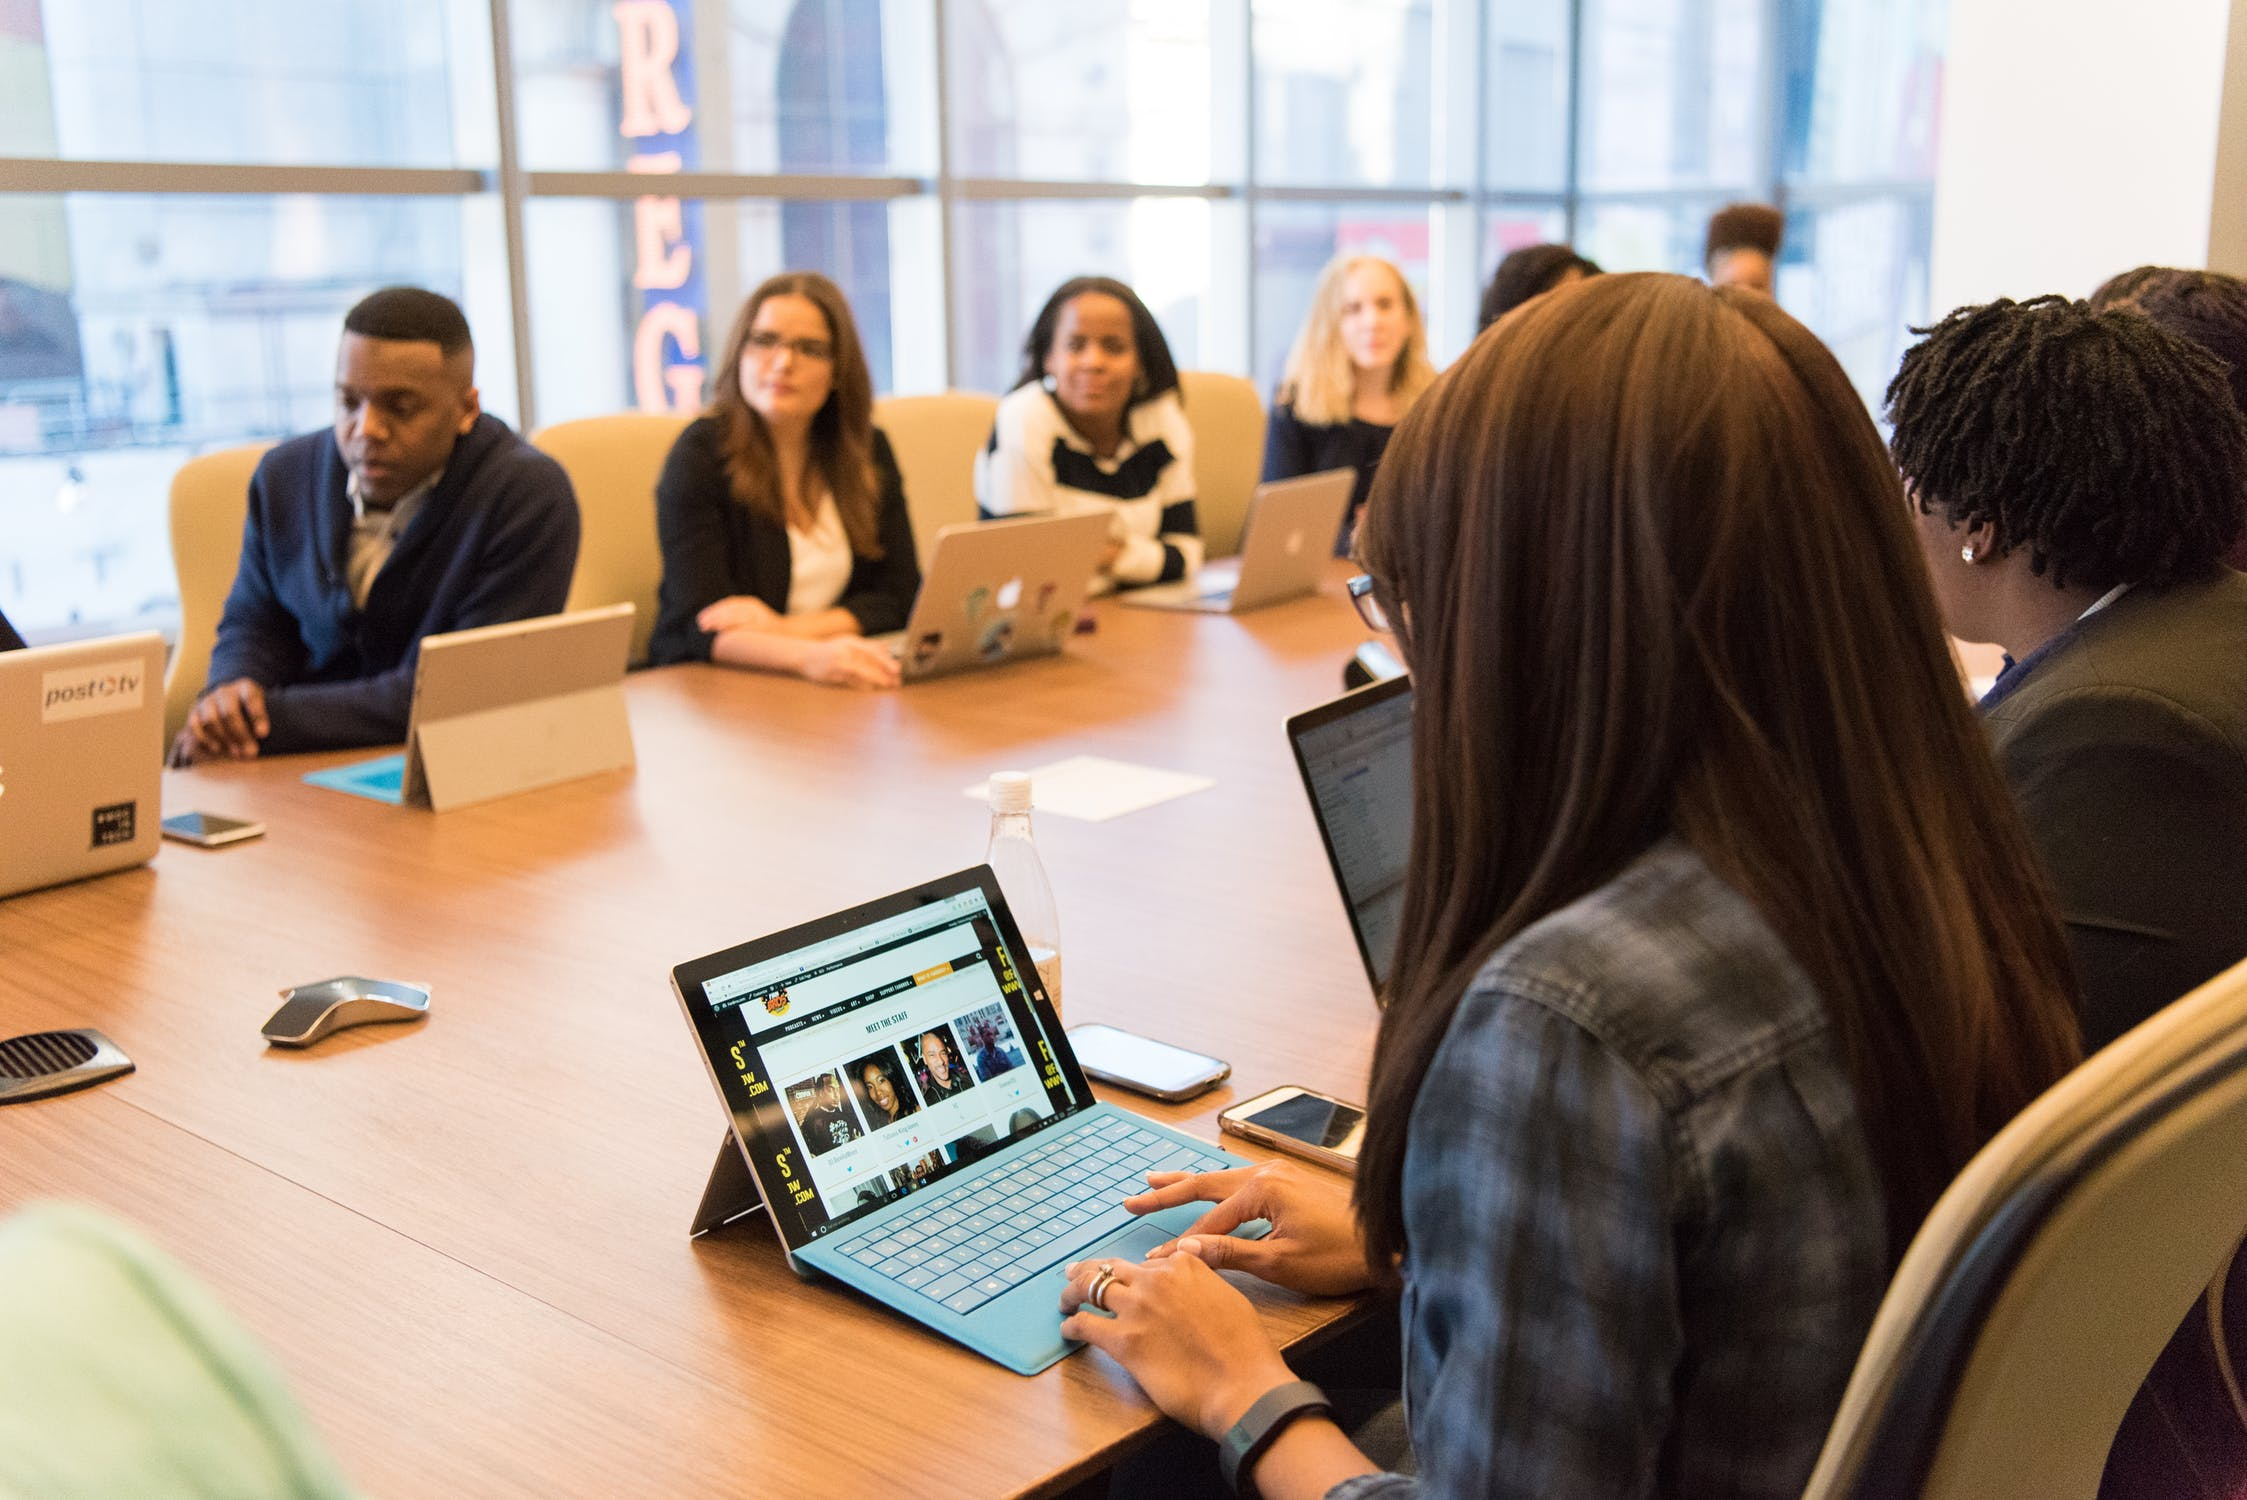 employees with laptops conference table